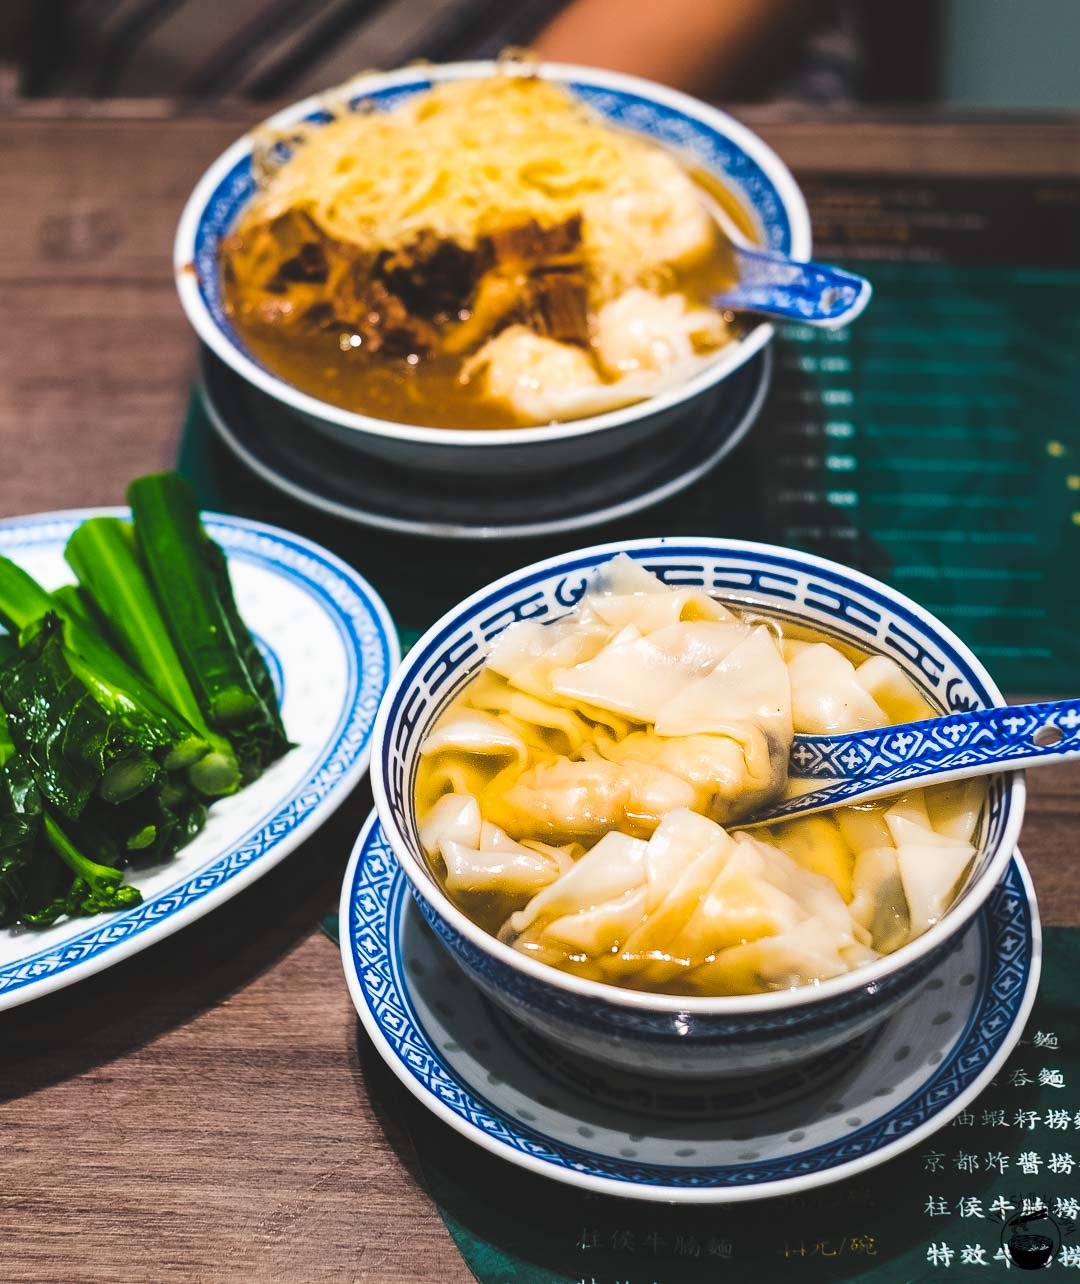 Mak's Noodle Hong Kong Prawn wonton noodle & Chinese broccoli in oyster sauce